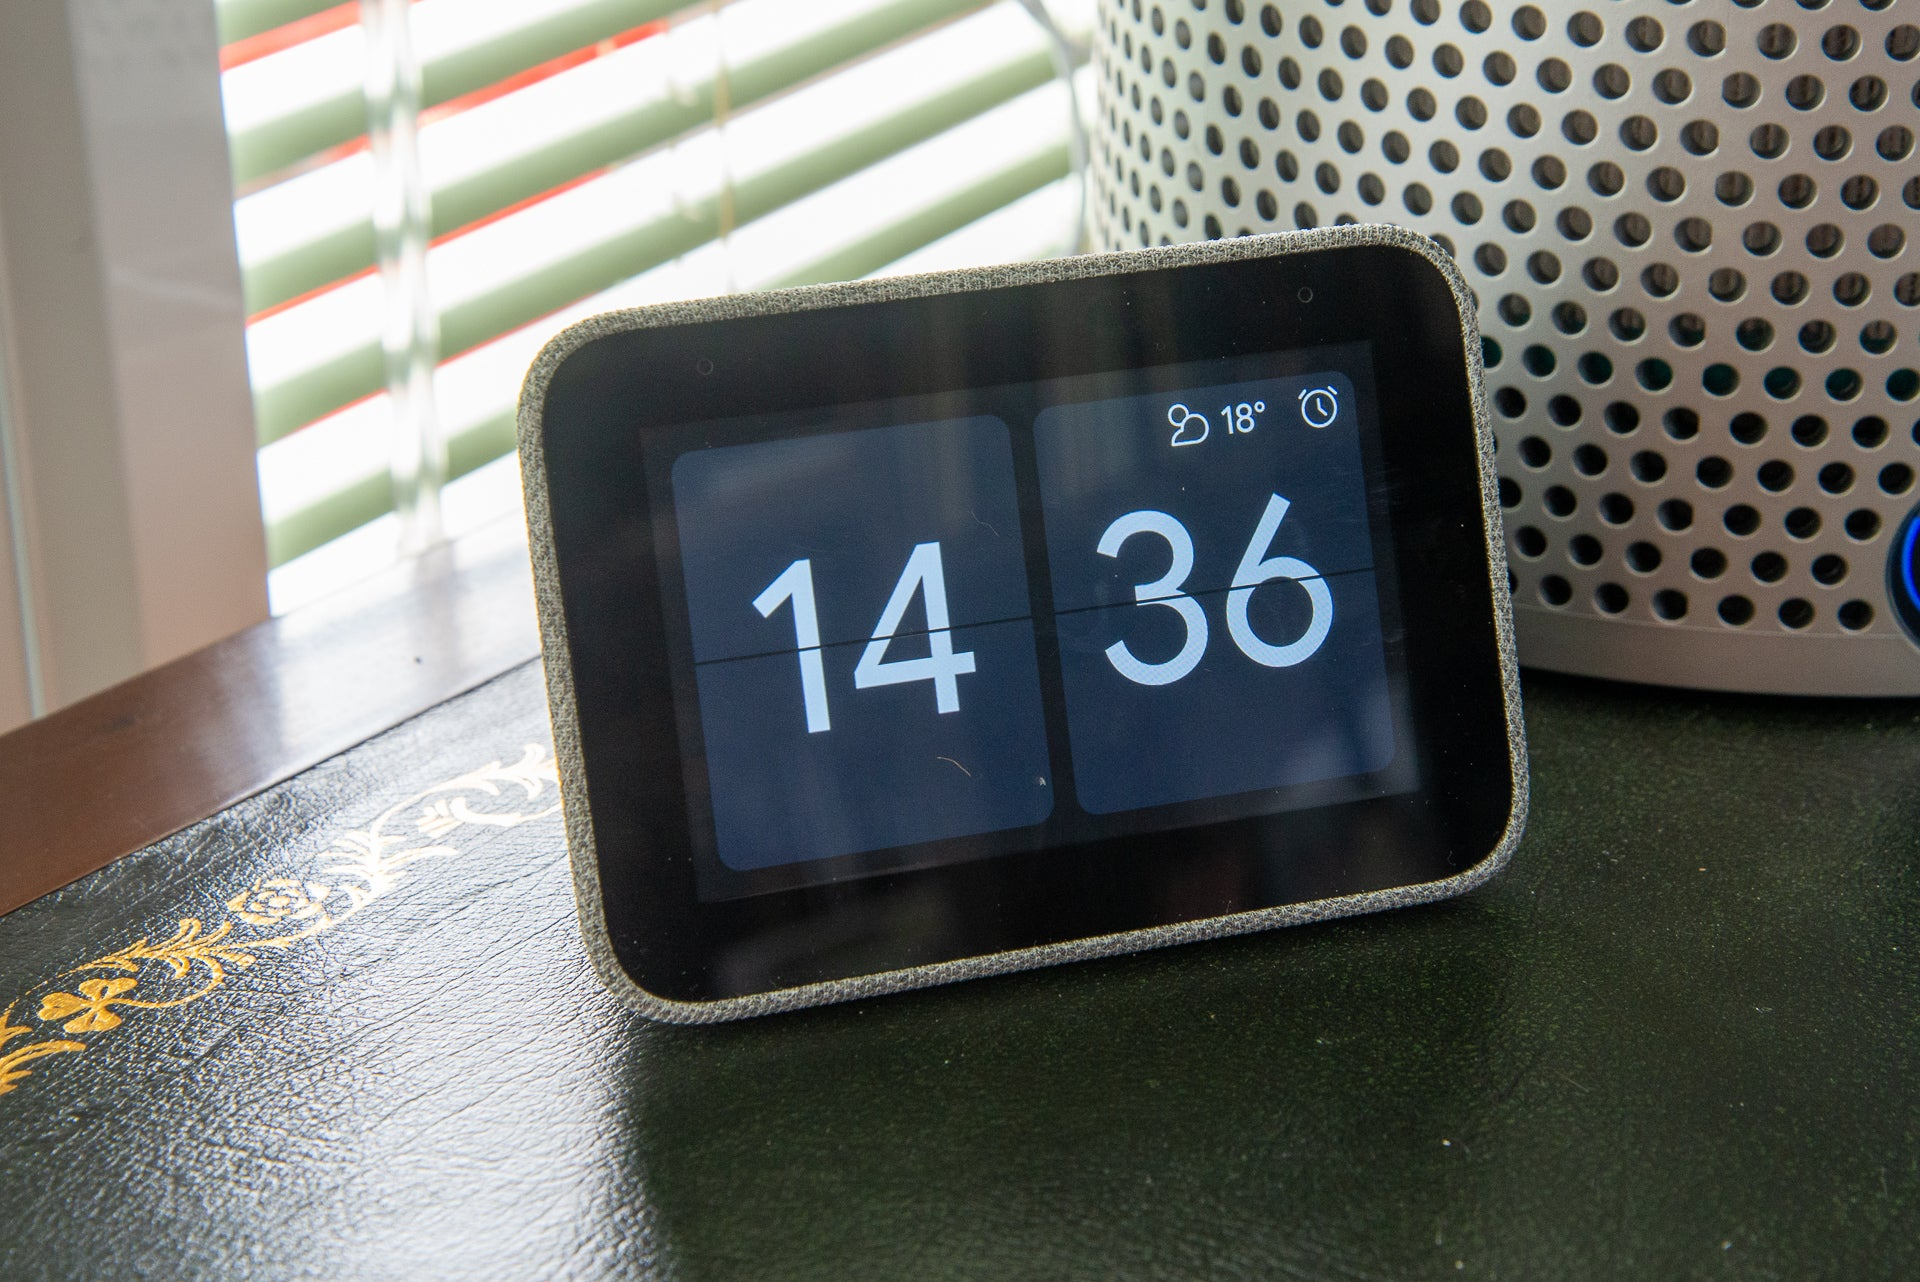 Energise your mornings with 50% off the Lenovo Sensible Clock